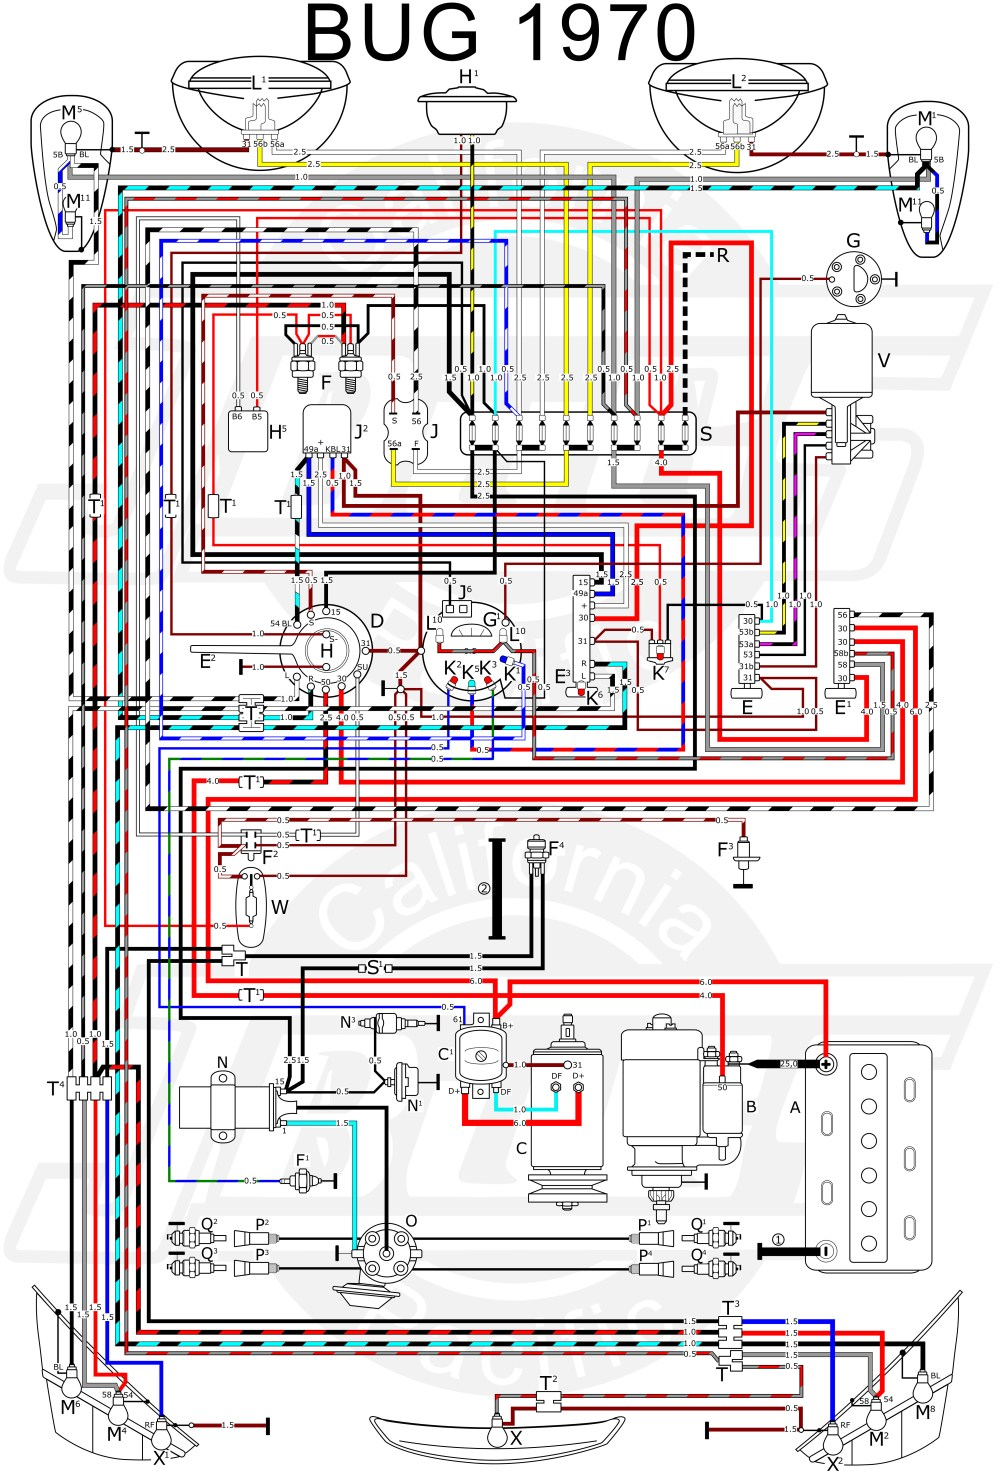 medium resolution of delco radio wiring diagram 1616 1794 wiring diagram auto delco radio wiring diagram 1616 1794